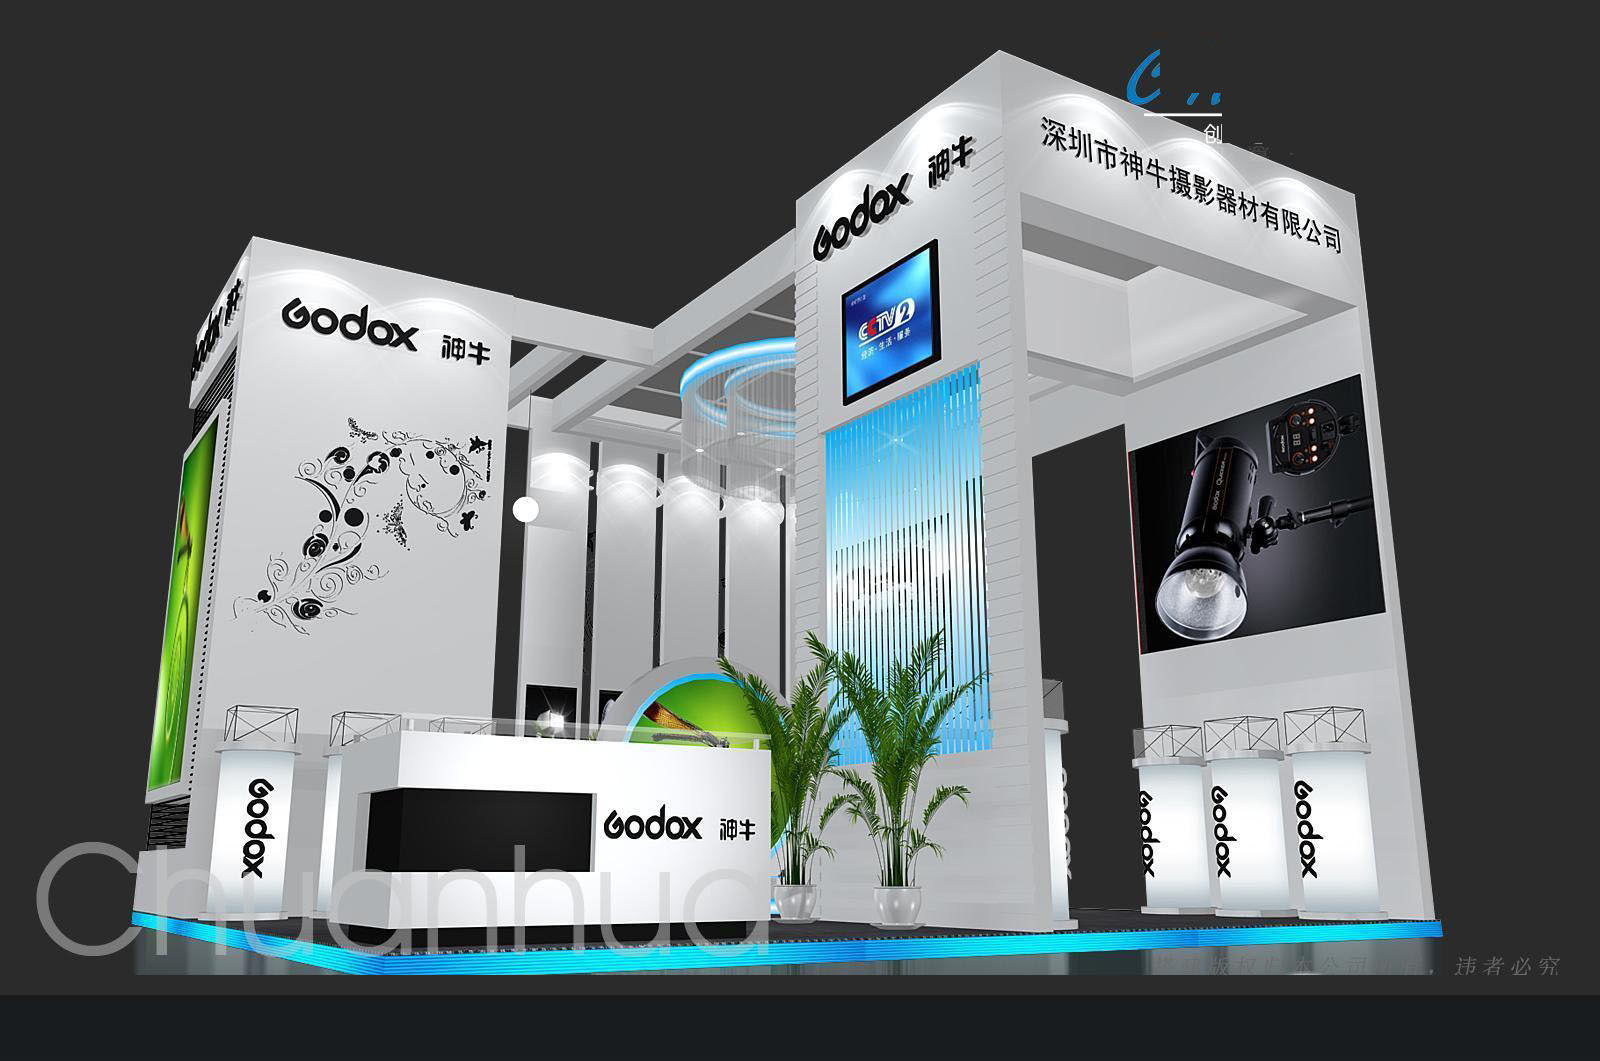 Exhibition area 6x6 3dmax2009 1387 3d model max for 6x6 room design